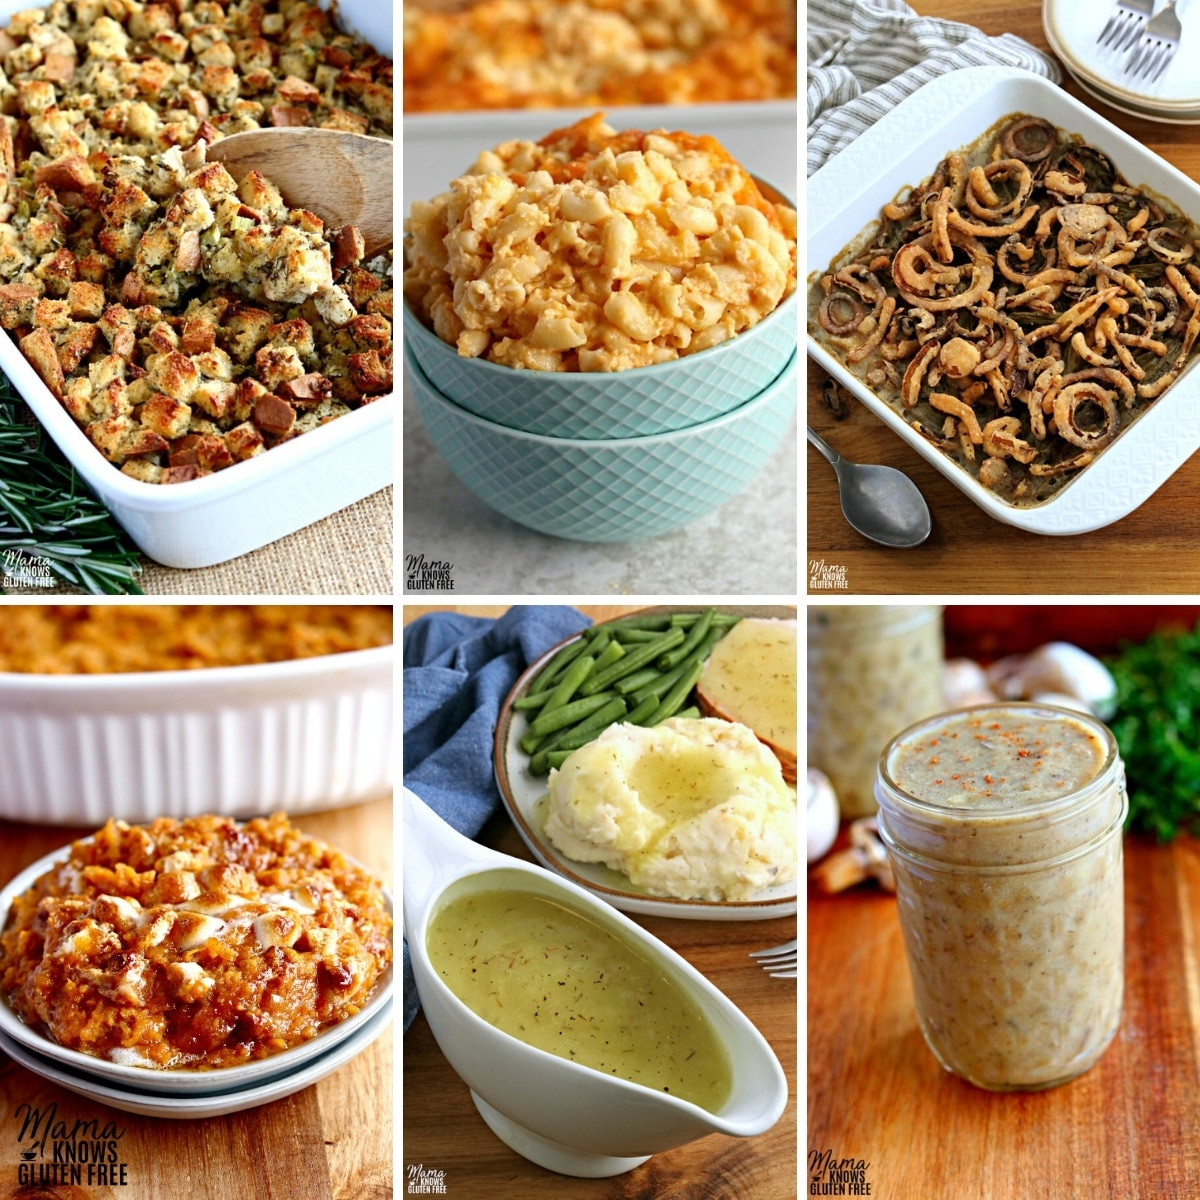 gluten-free Thanksgiving side dish recipes photo collage